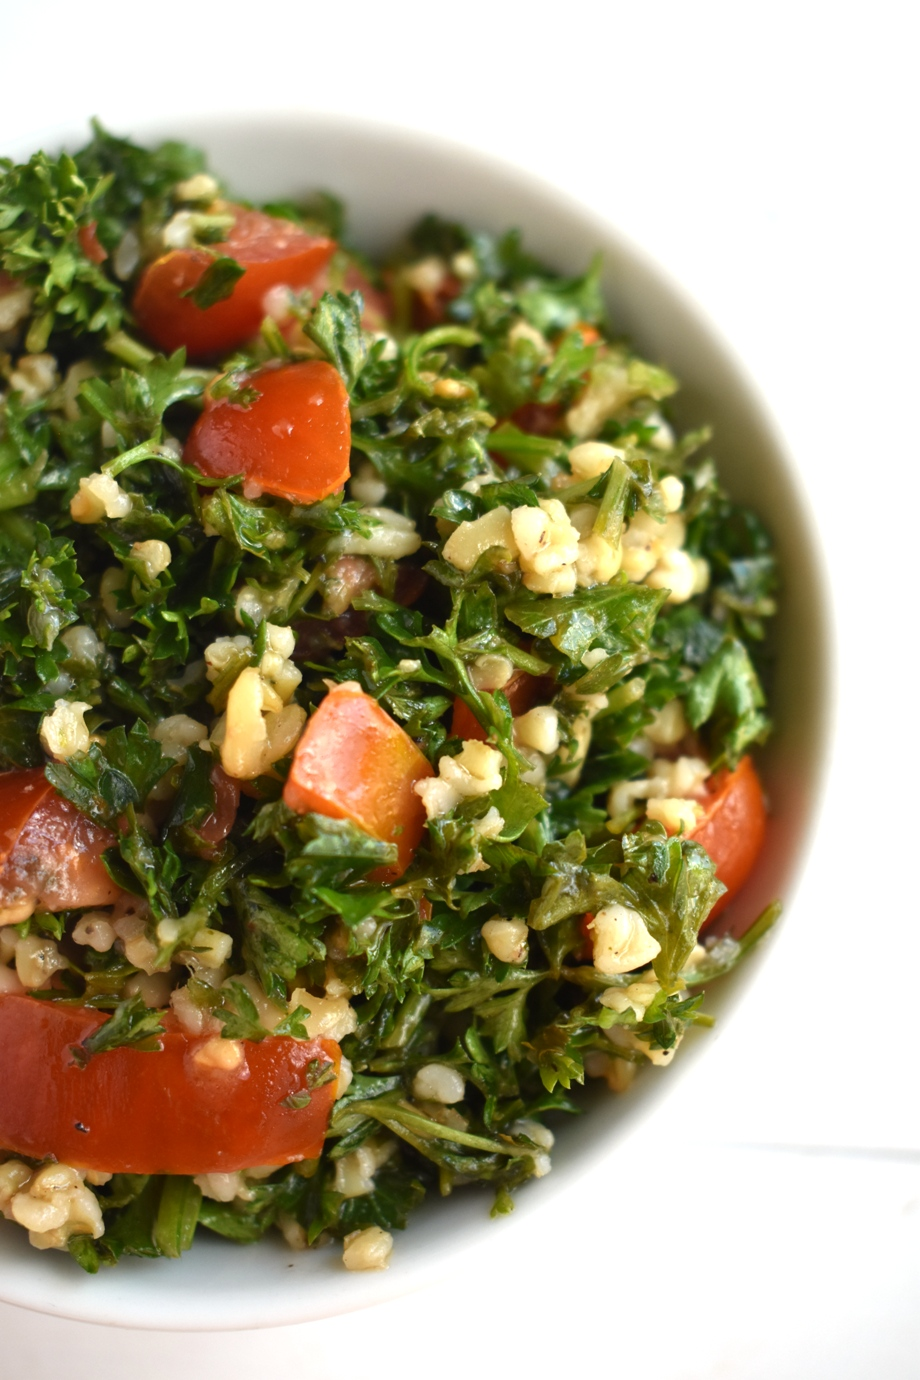 Easy Tabbouleh Salad is ready in just 20 minutes and is fresh and healthy with parsley, tomatoes, lemon juice and bulgur or freekeh grains!